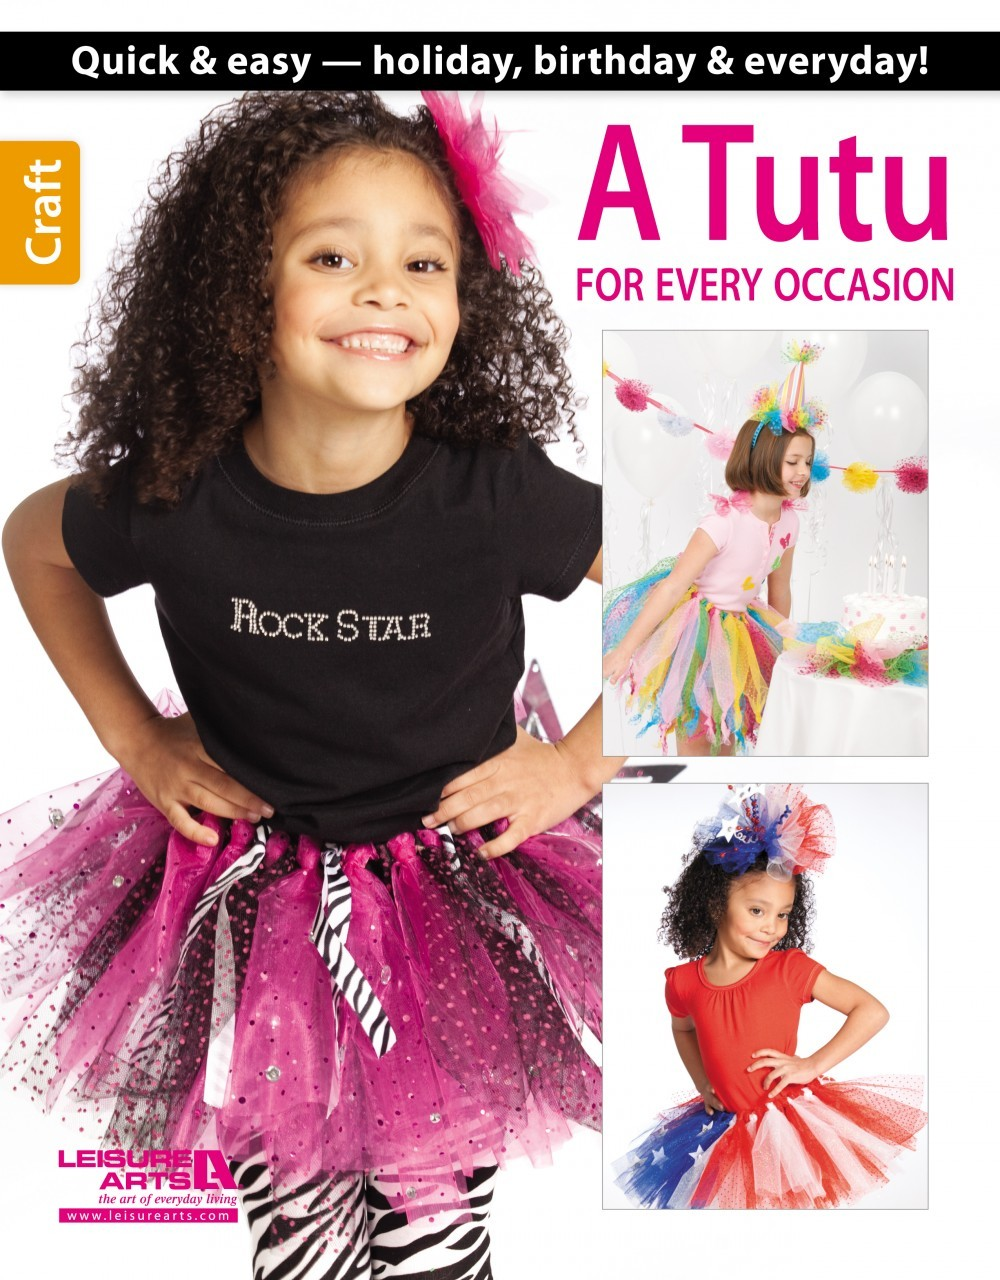 73d273311 Leisure Arts A TUTU FOR EVERY OCCASION Book - Softcover $9.99/each